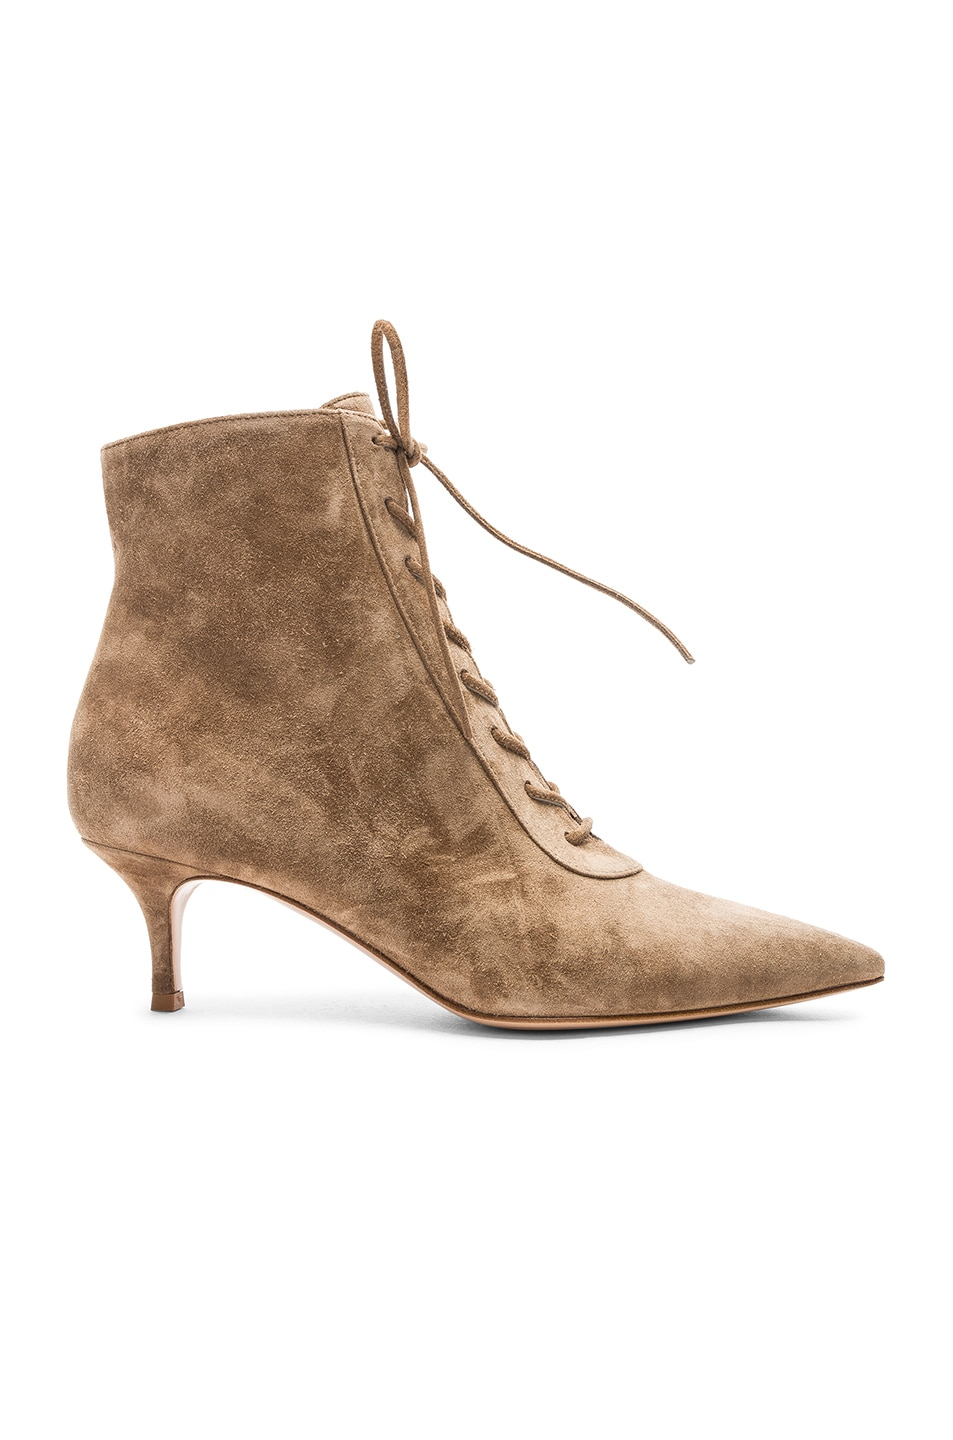 Image 1 of Gianvito Rossi Suede Kitten Heel Lace Up Ankle Boots in Camel